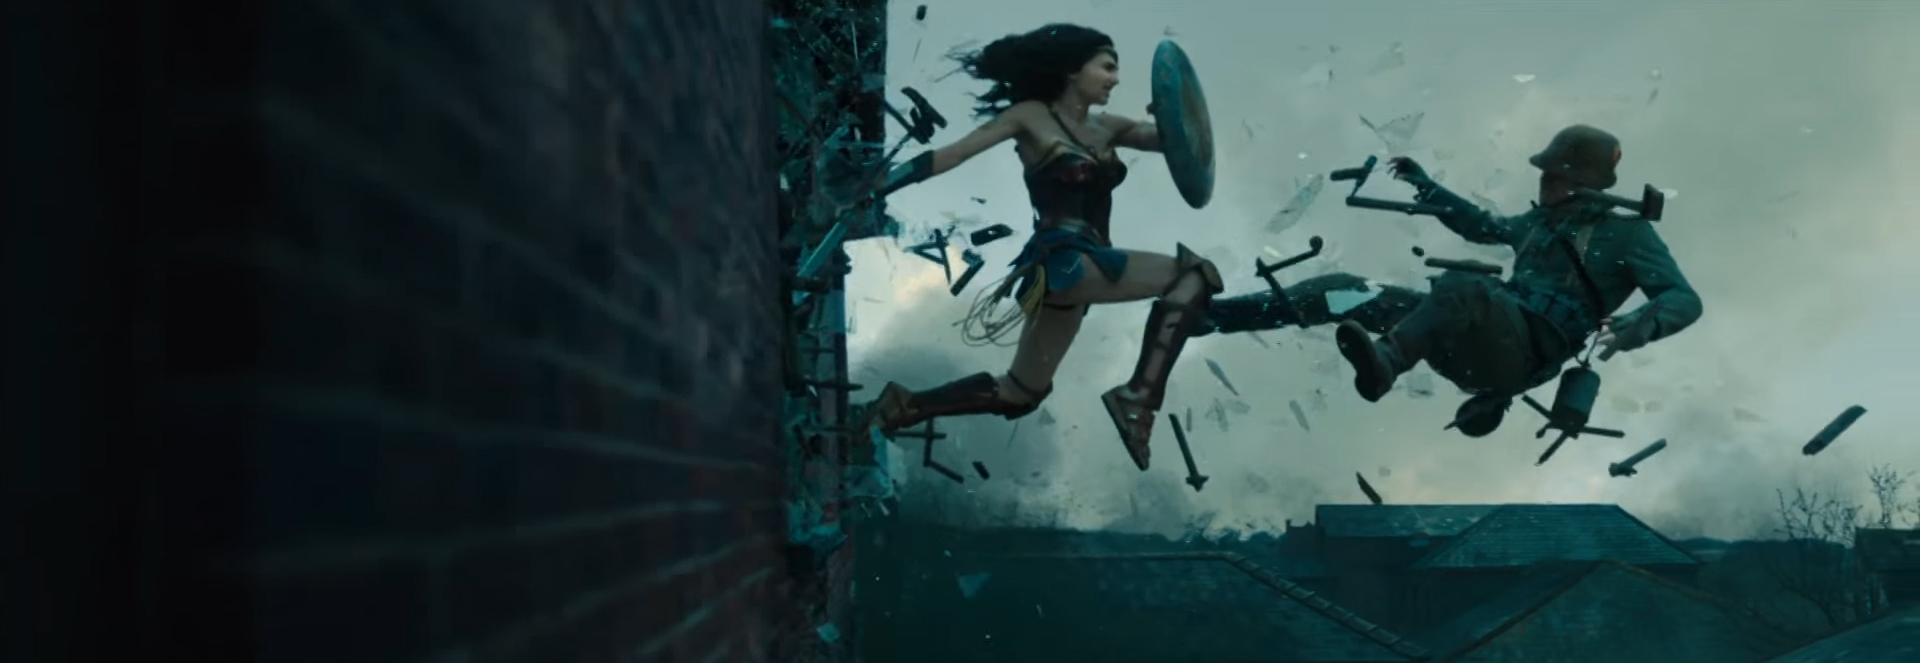 Wonder Woman (2017). Image Credit: Warner Bros.